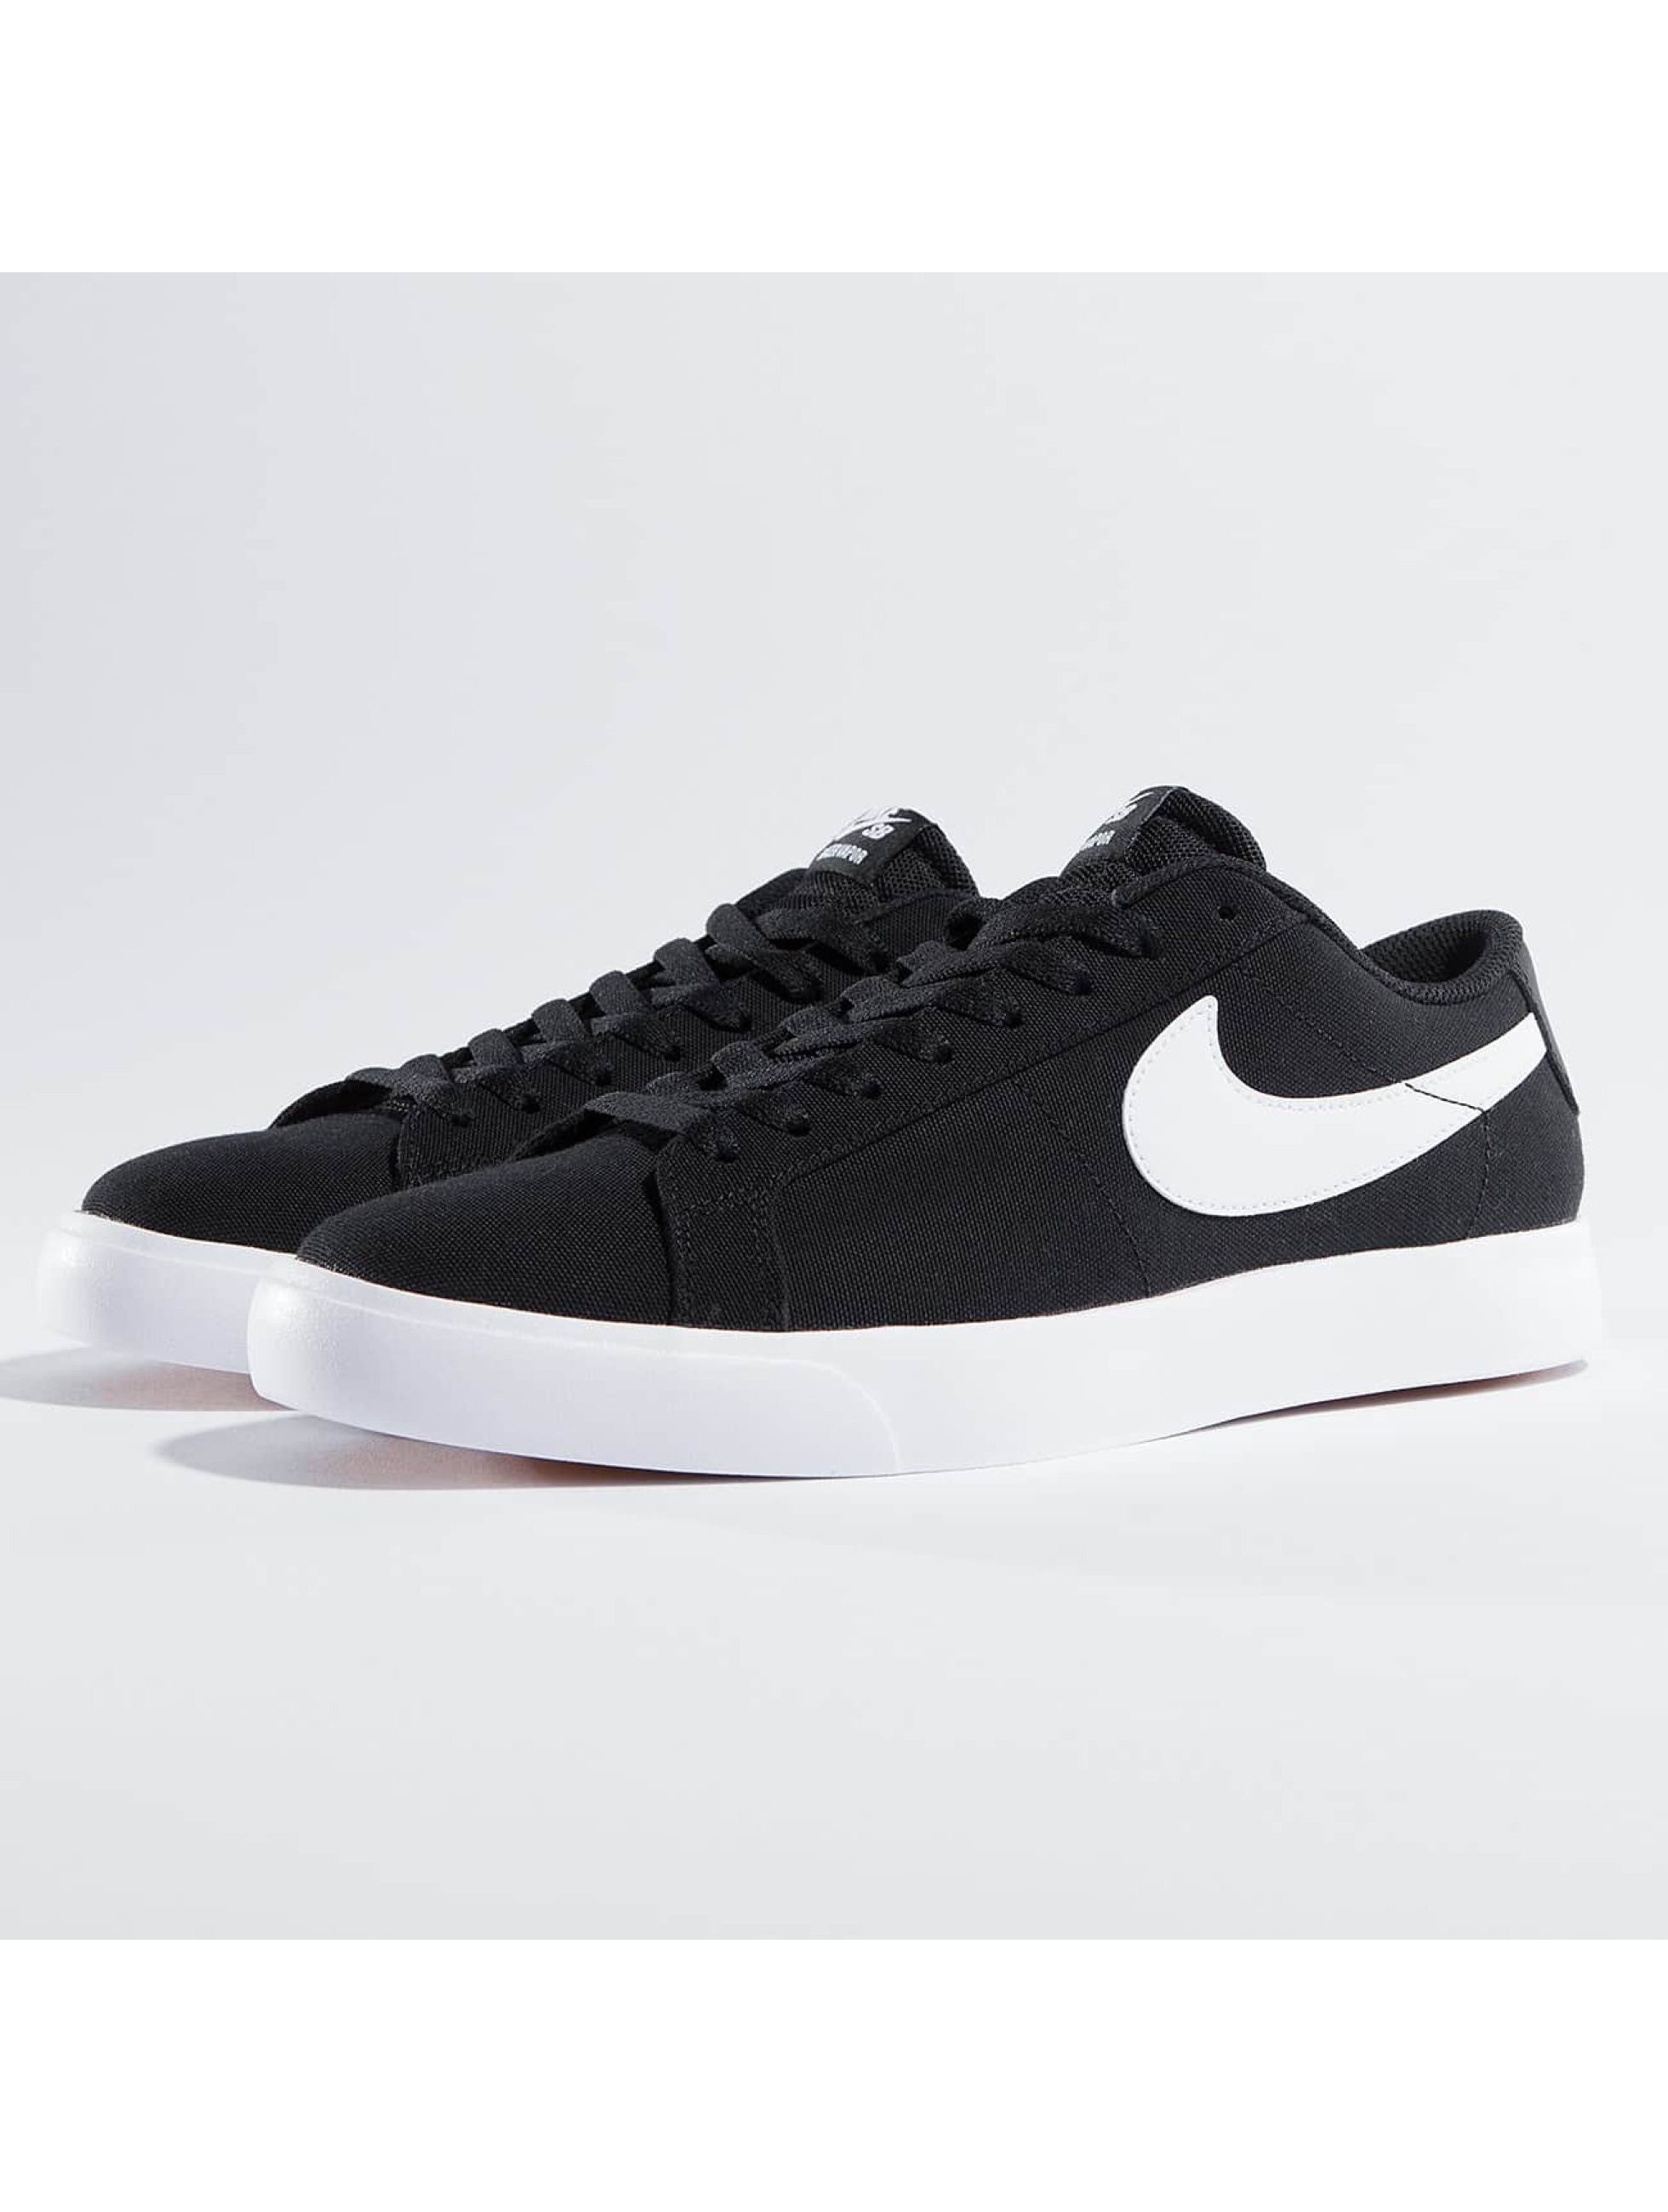 nike sb blazer vapor noir homme baskets 306079. Black Bedroom Furniture Sets. Home Design Ideas